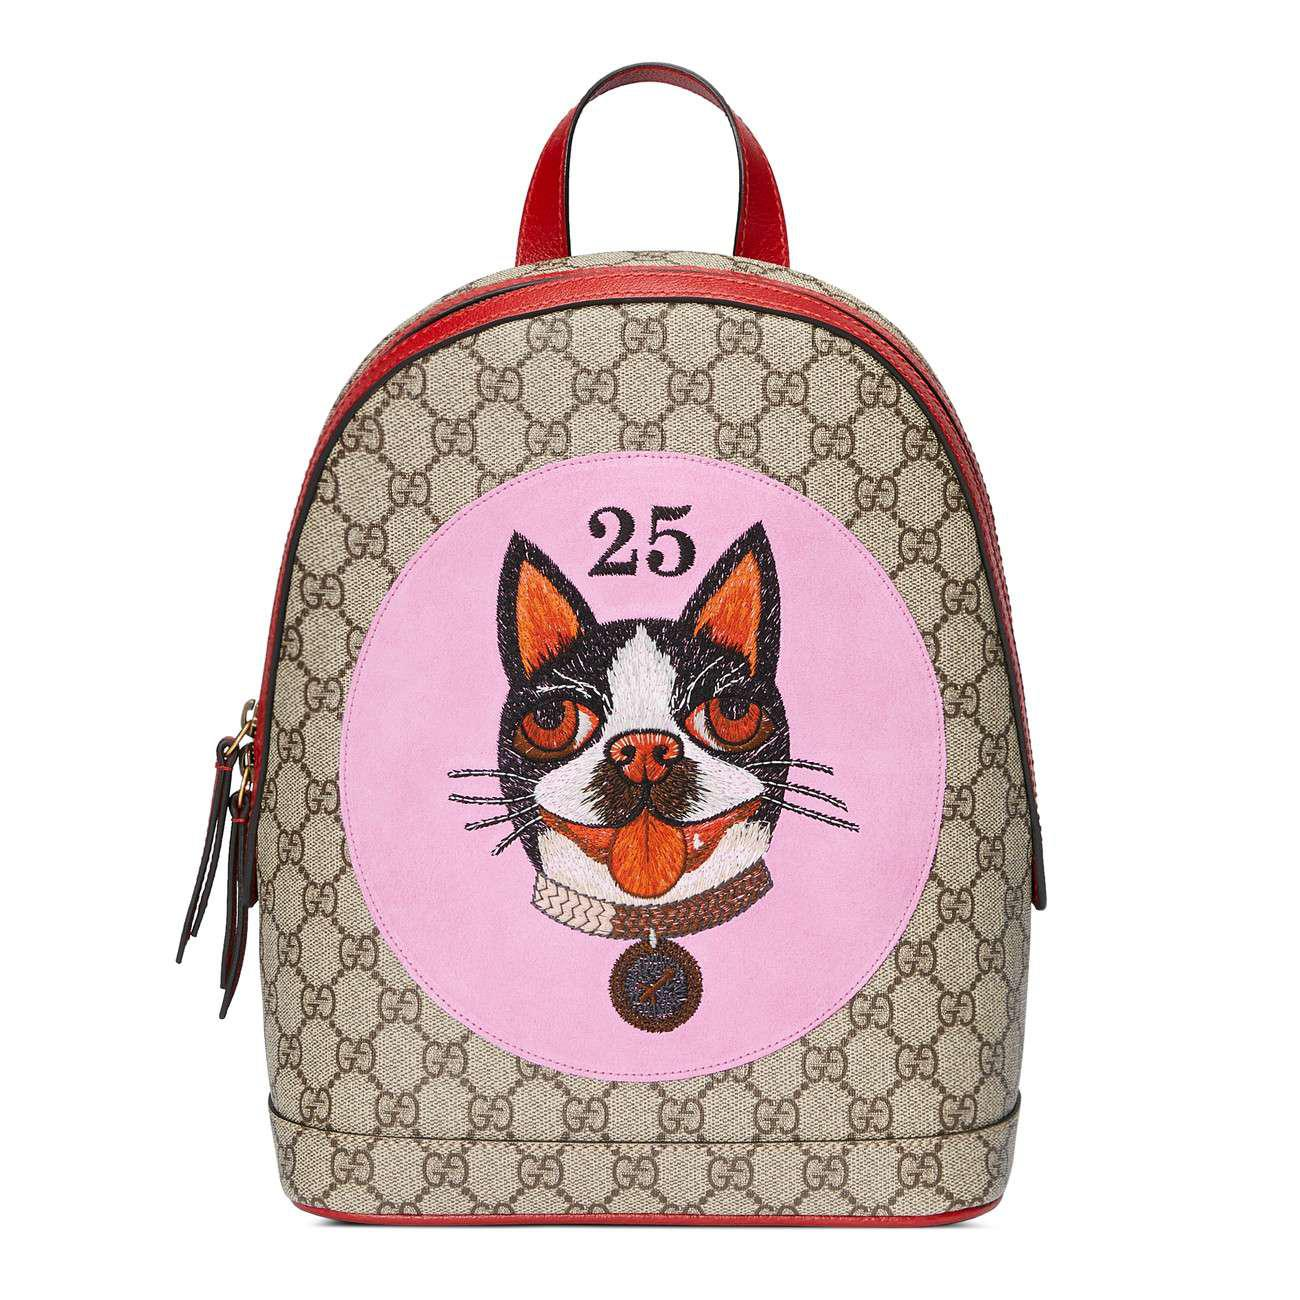 1a2a3d3bbf7d Gucci GG Supreme Bosco Backpack in Pink - Lyst